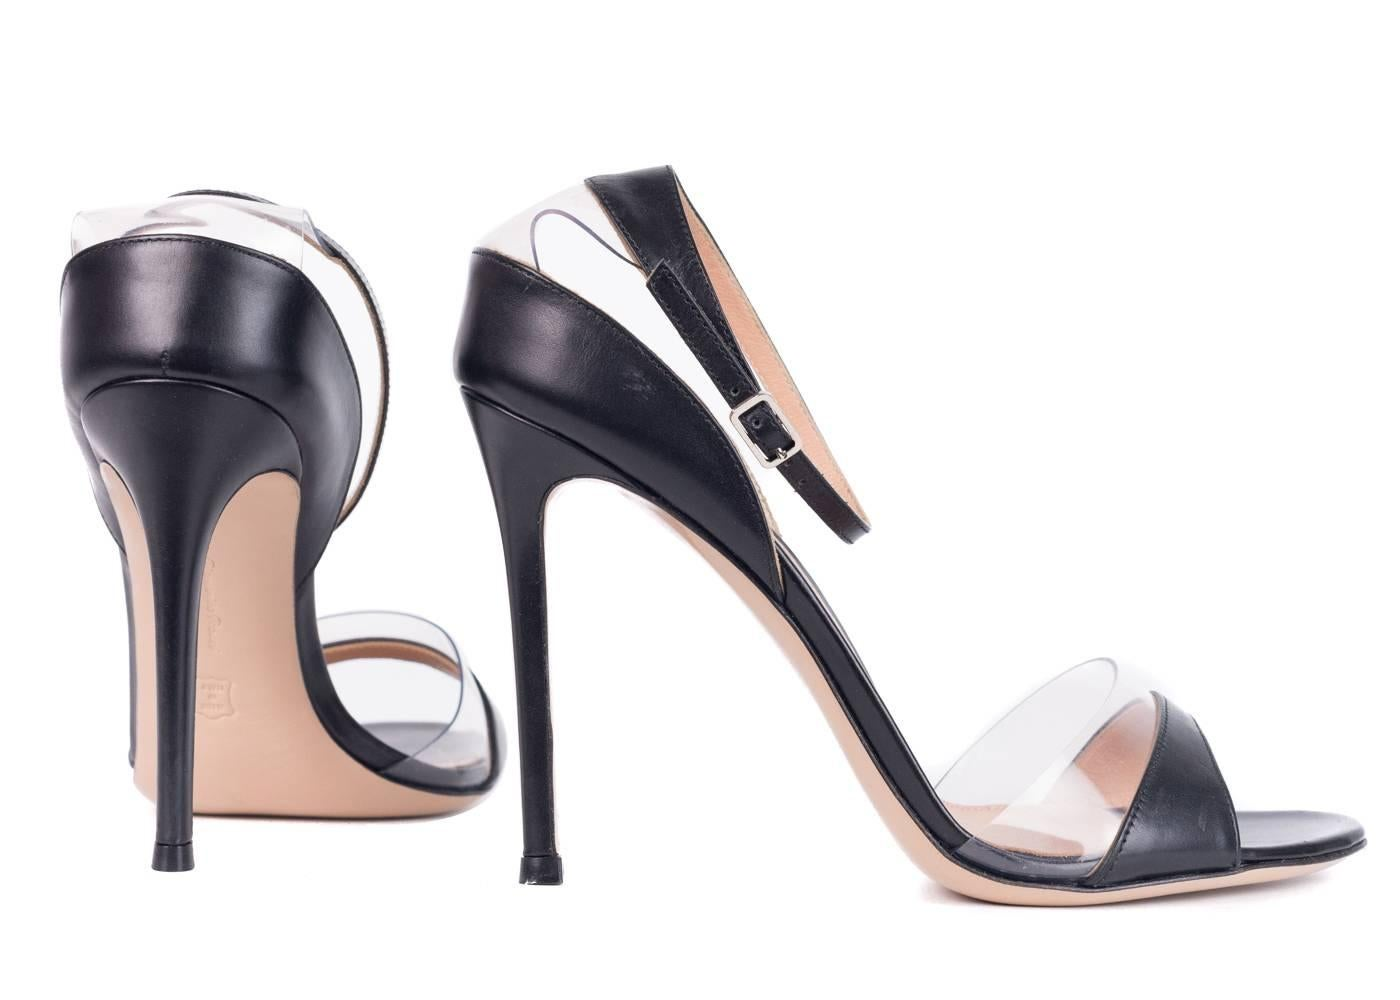 Drop Shipping Gianvito Rossi Woman Pvc-trimmed Patent-leather Sandals Size 36.5 Shop Sale Online Footlocker Finishline Online Discount Looking For QIu7gg5sDU